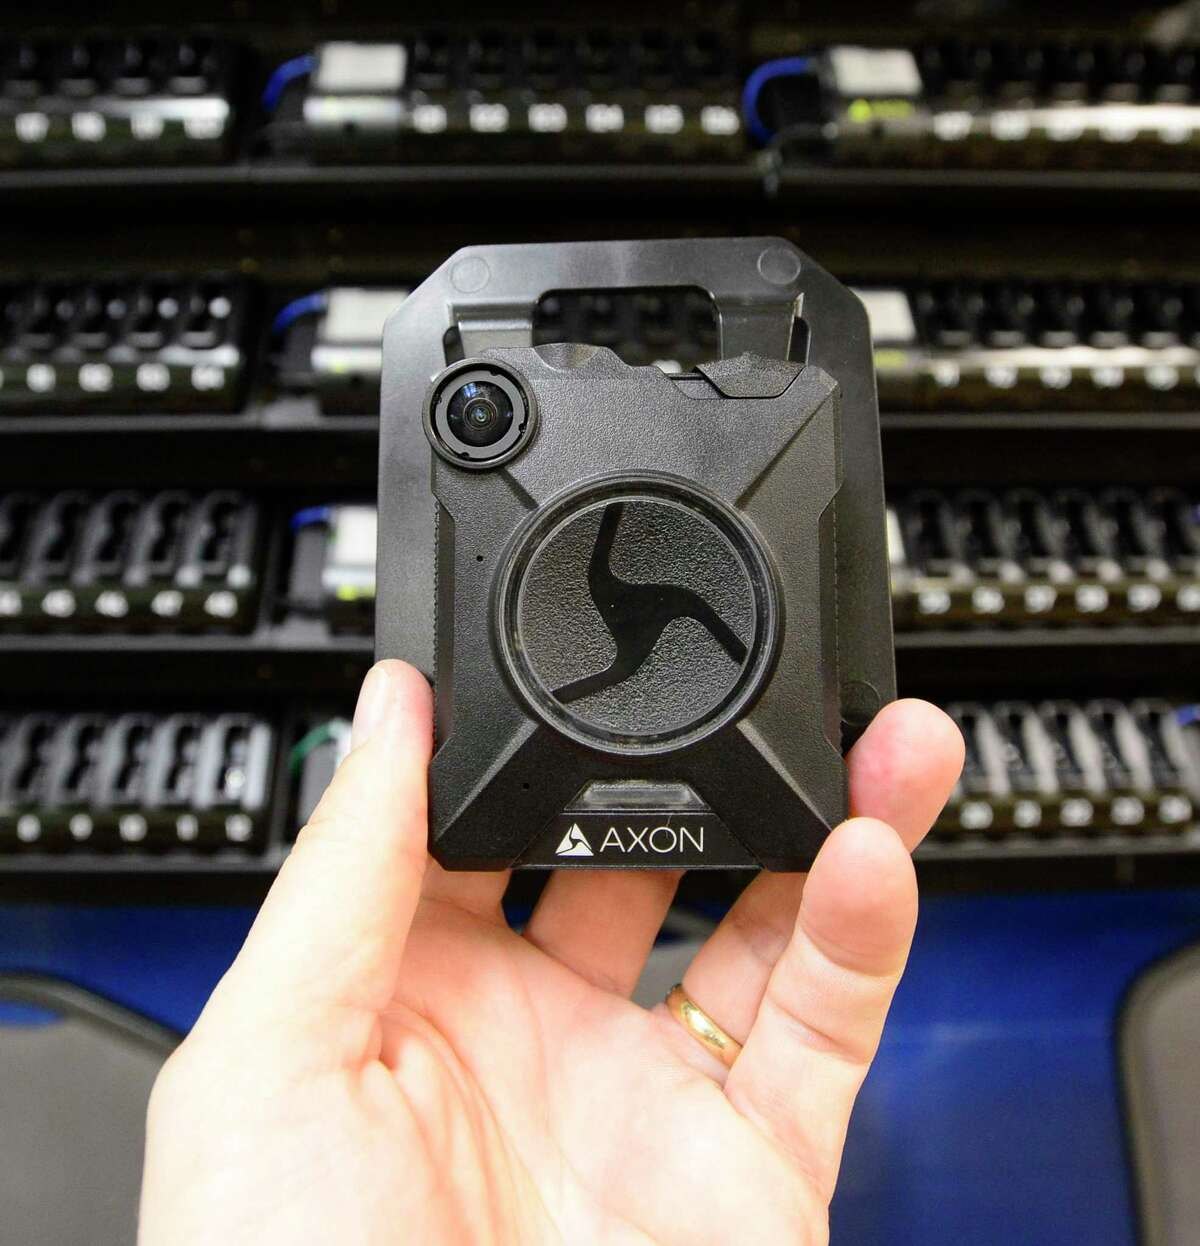 An Axon Flex 2 HD camera, photographed on Wednesday, March 14, 2018 at police headquarters in Stamford, Connecticut, will soon be worn by all patrol officers in the department. Body-worn cameras are recording devices police officers wear as part of their uniforms to document what they see as they perform their duties.